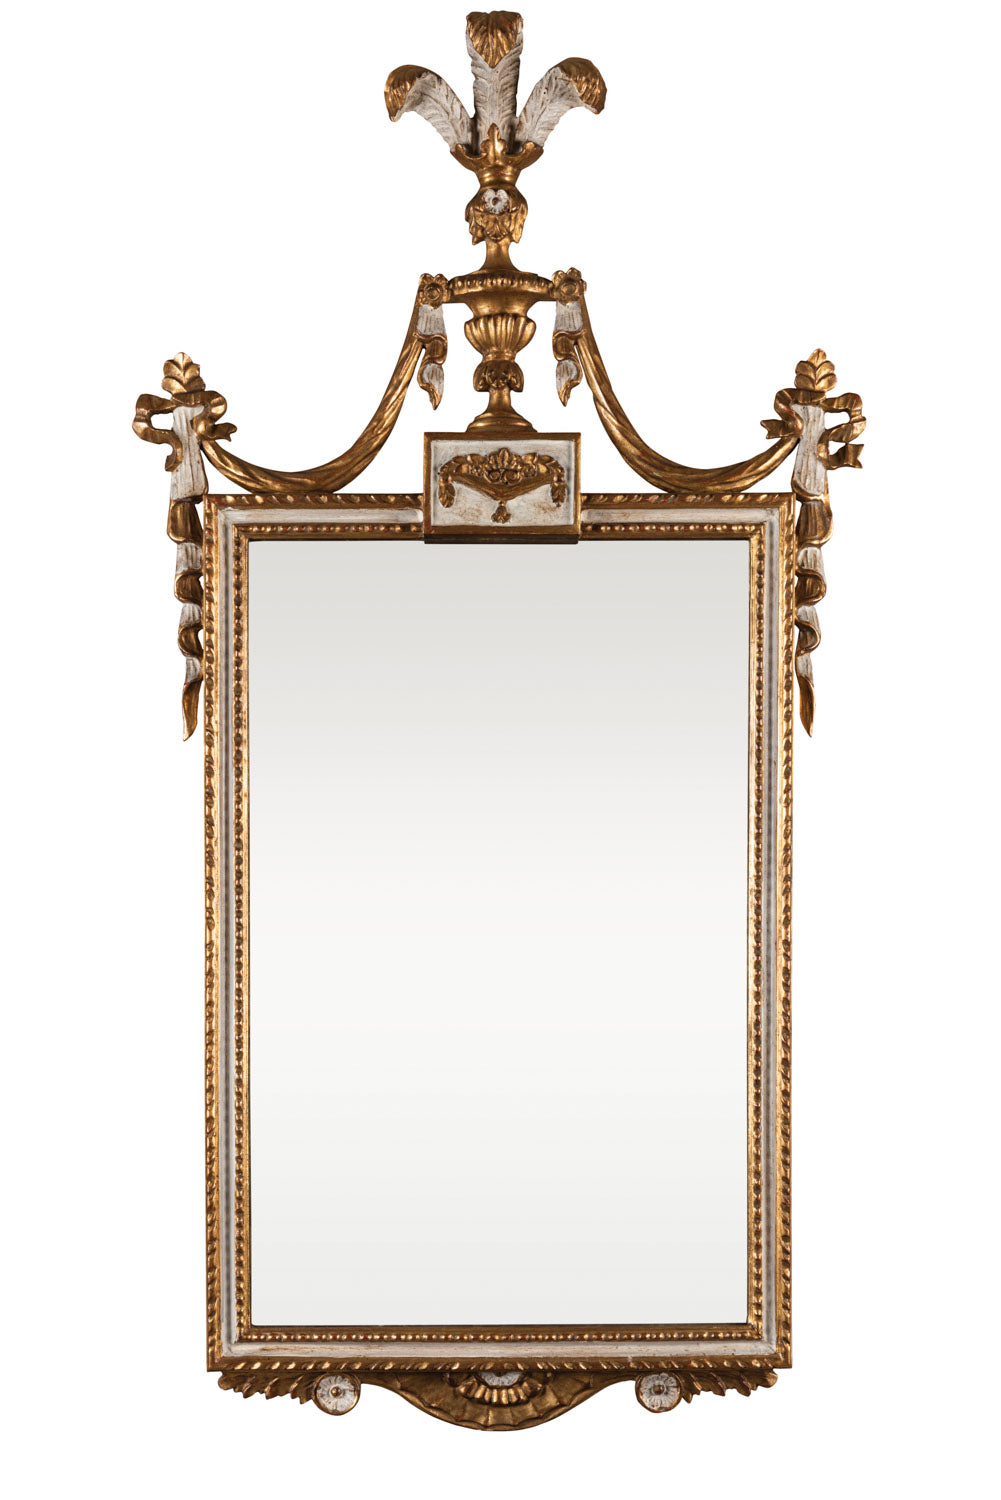 A very decorative giltwood and cream painted wall mirror with plume detailing, Italian first half of the 19th Century